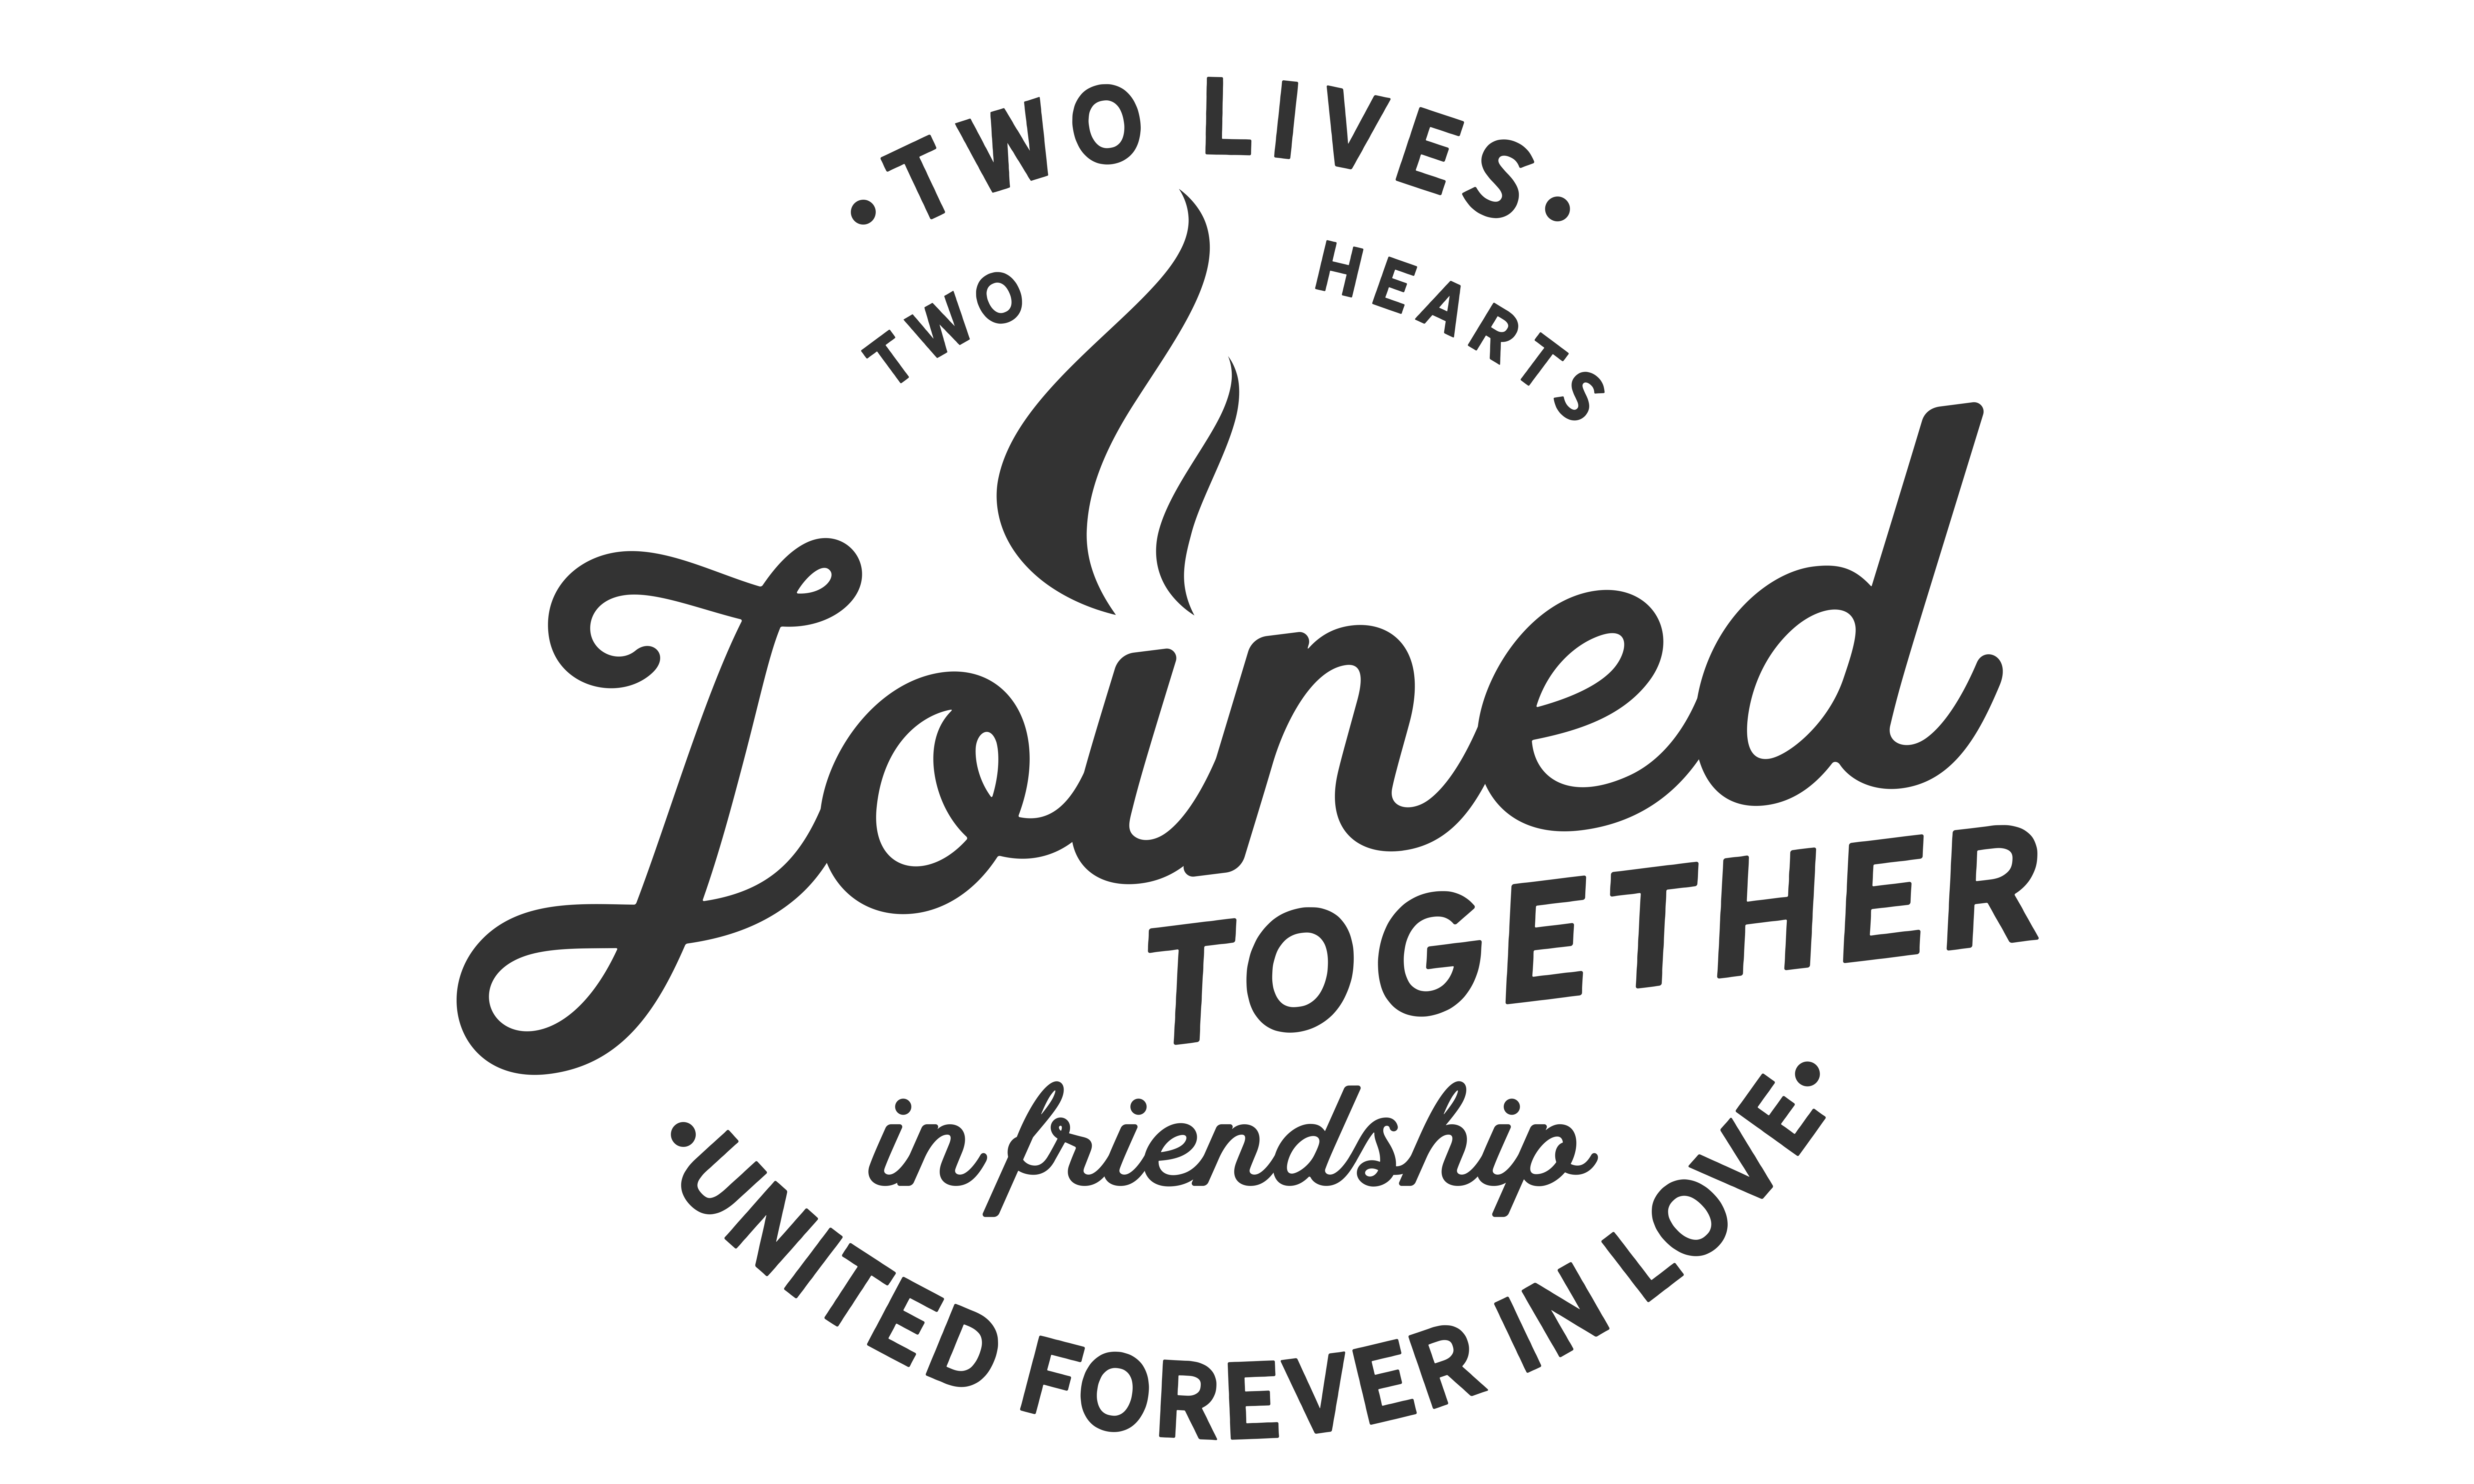 Download Free Two Lives Two Hearts Joined Together Graphic By Baraeiji for Cricut Explore, Silhouette and other cutting machines.